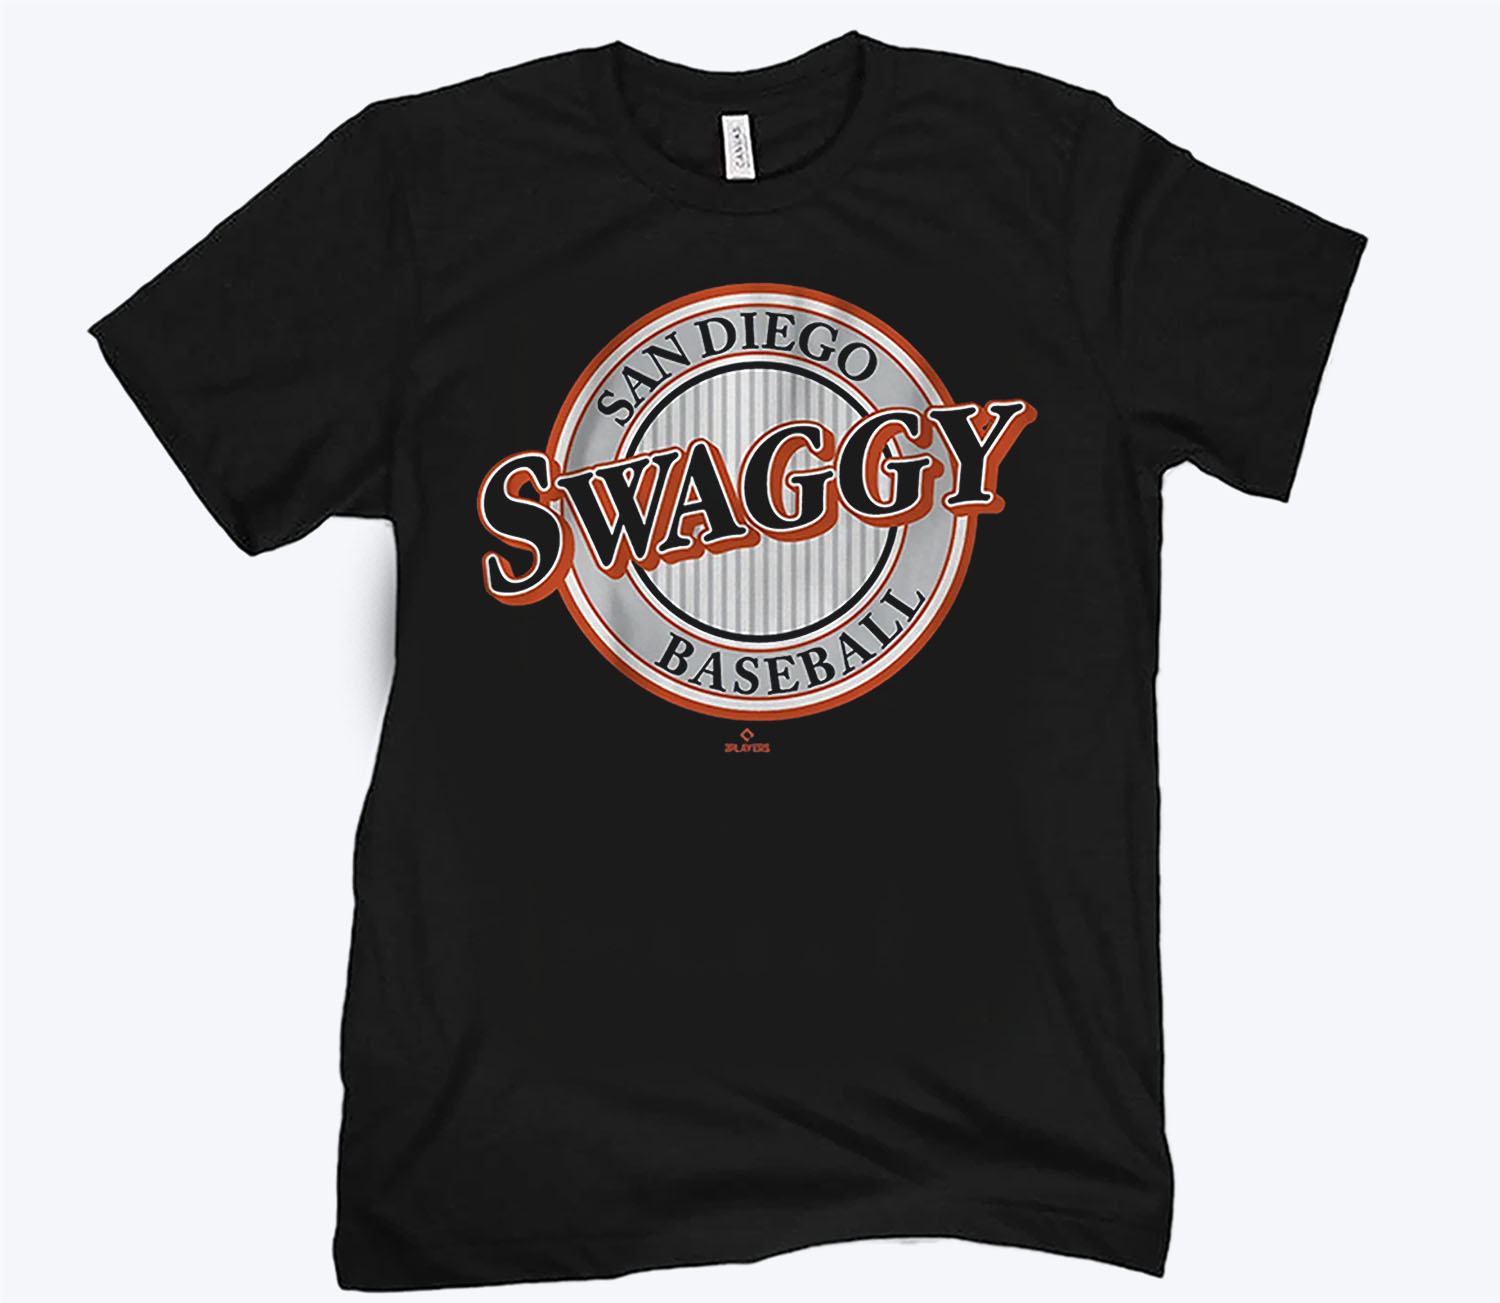 Swaggy San Diego Tee Shirt - MLBPA Licensed